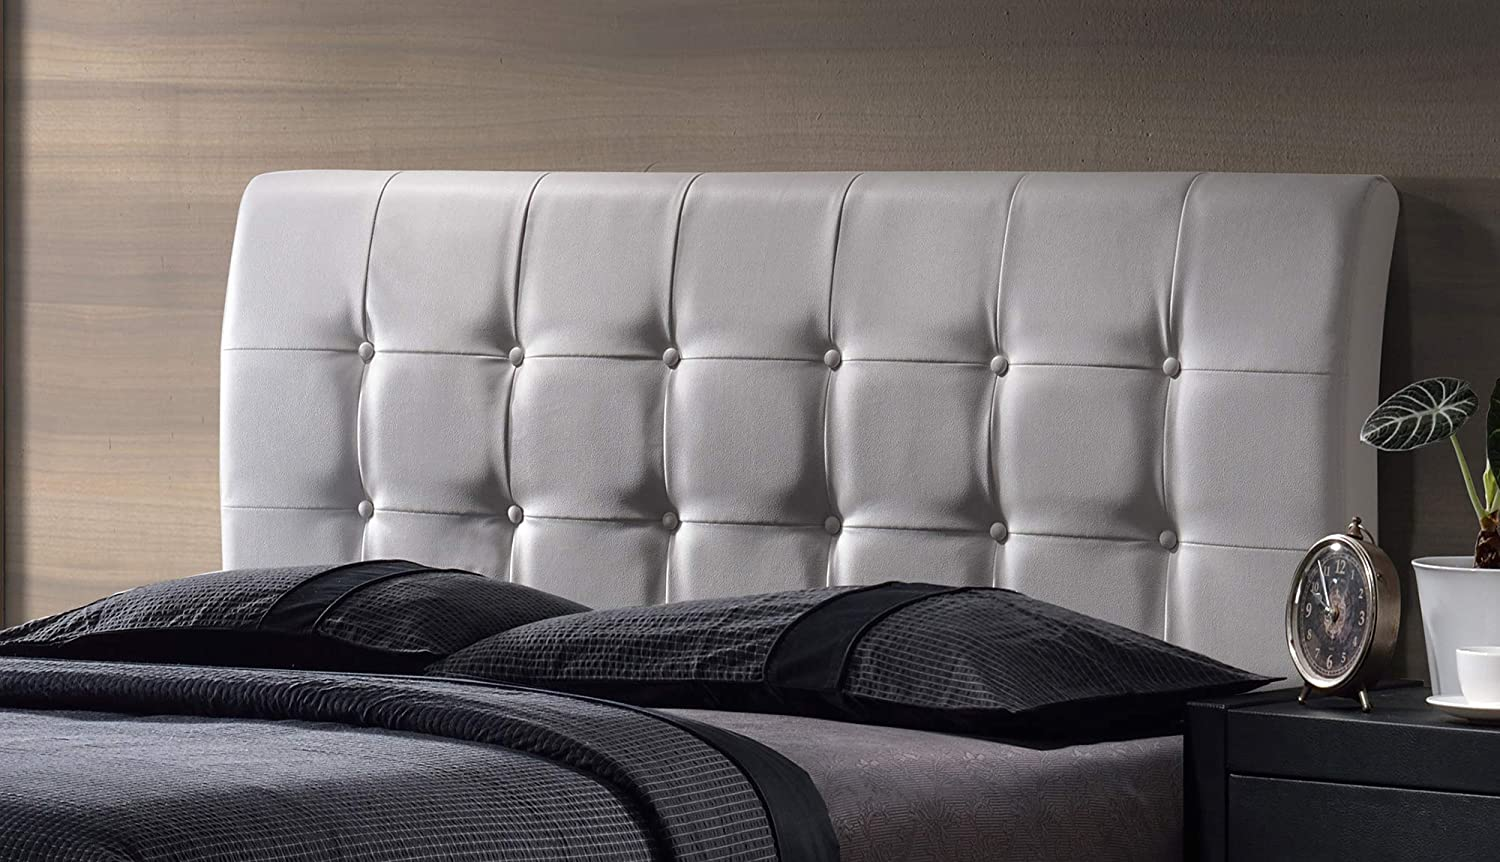 Hillsdale Lusso Price reduction Full Upholstered All items free shipping White Headboard